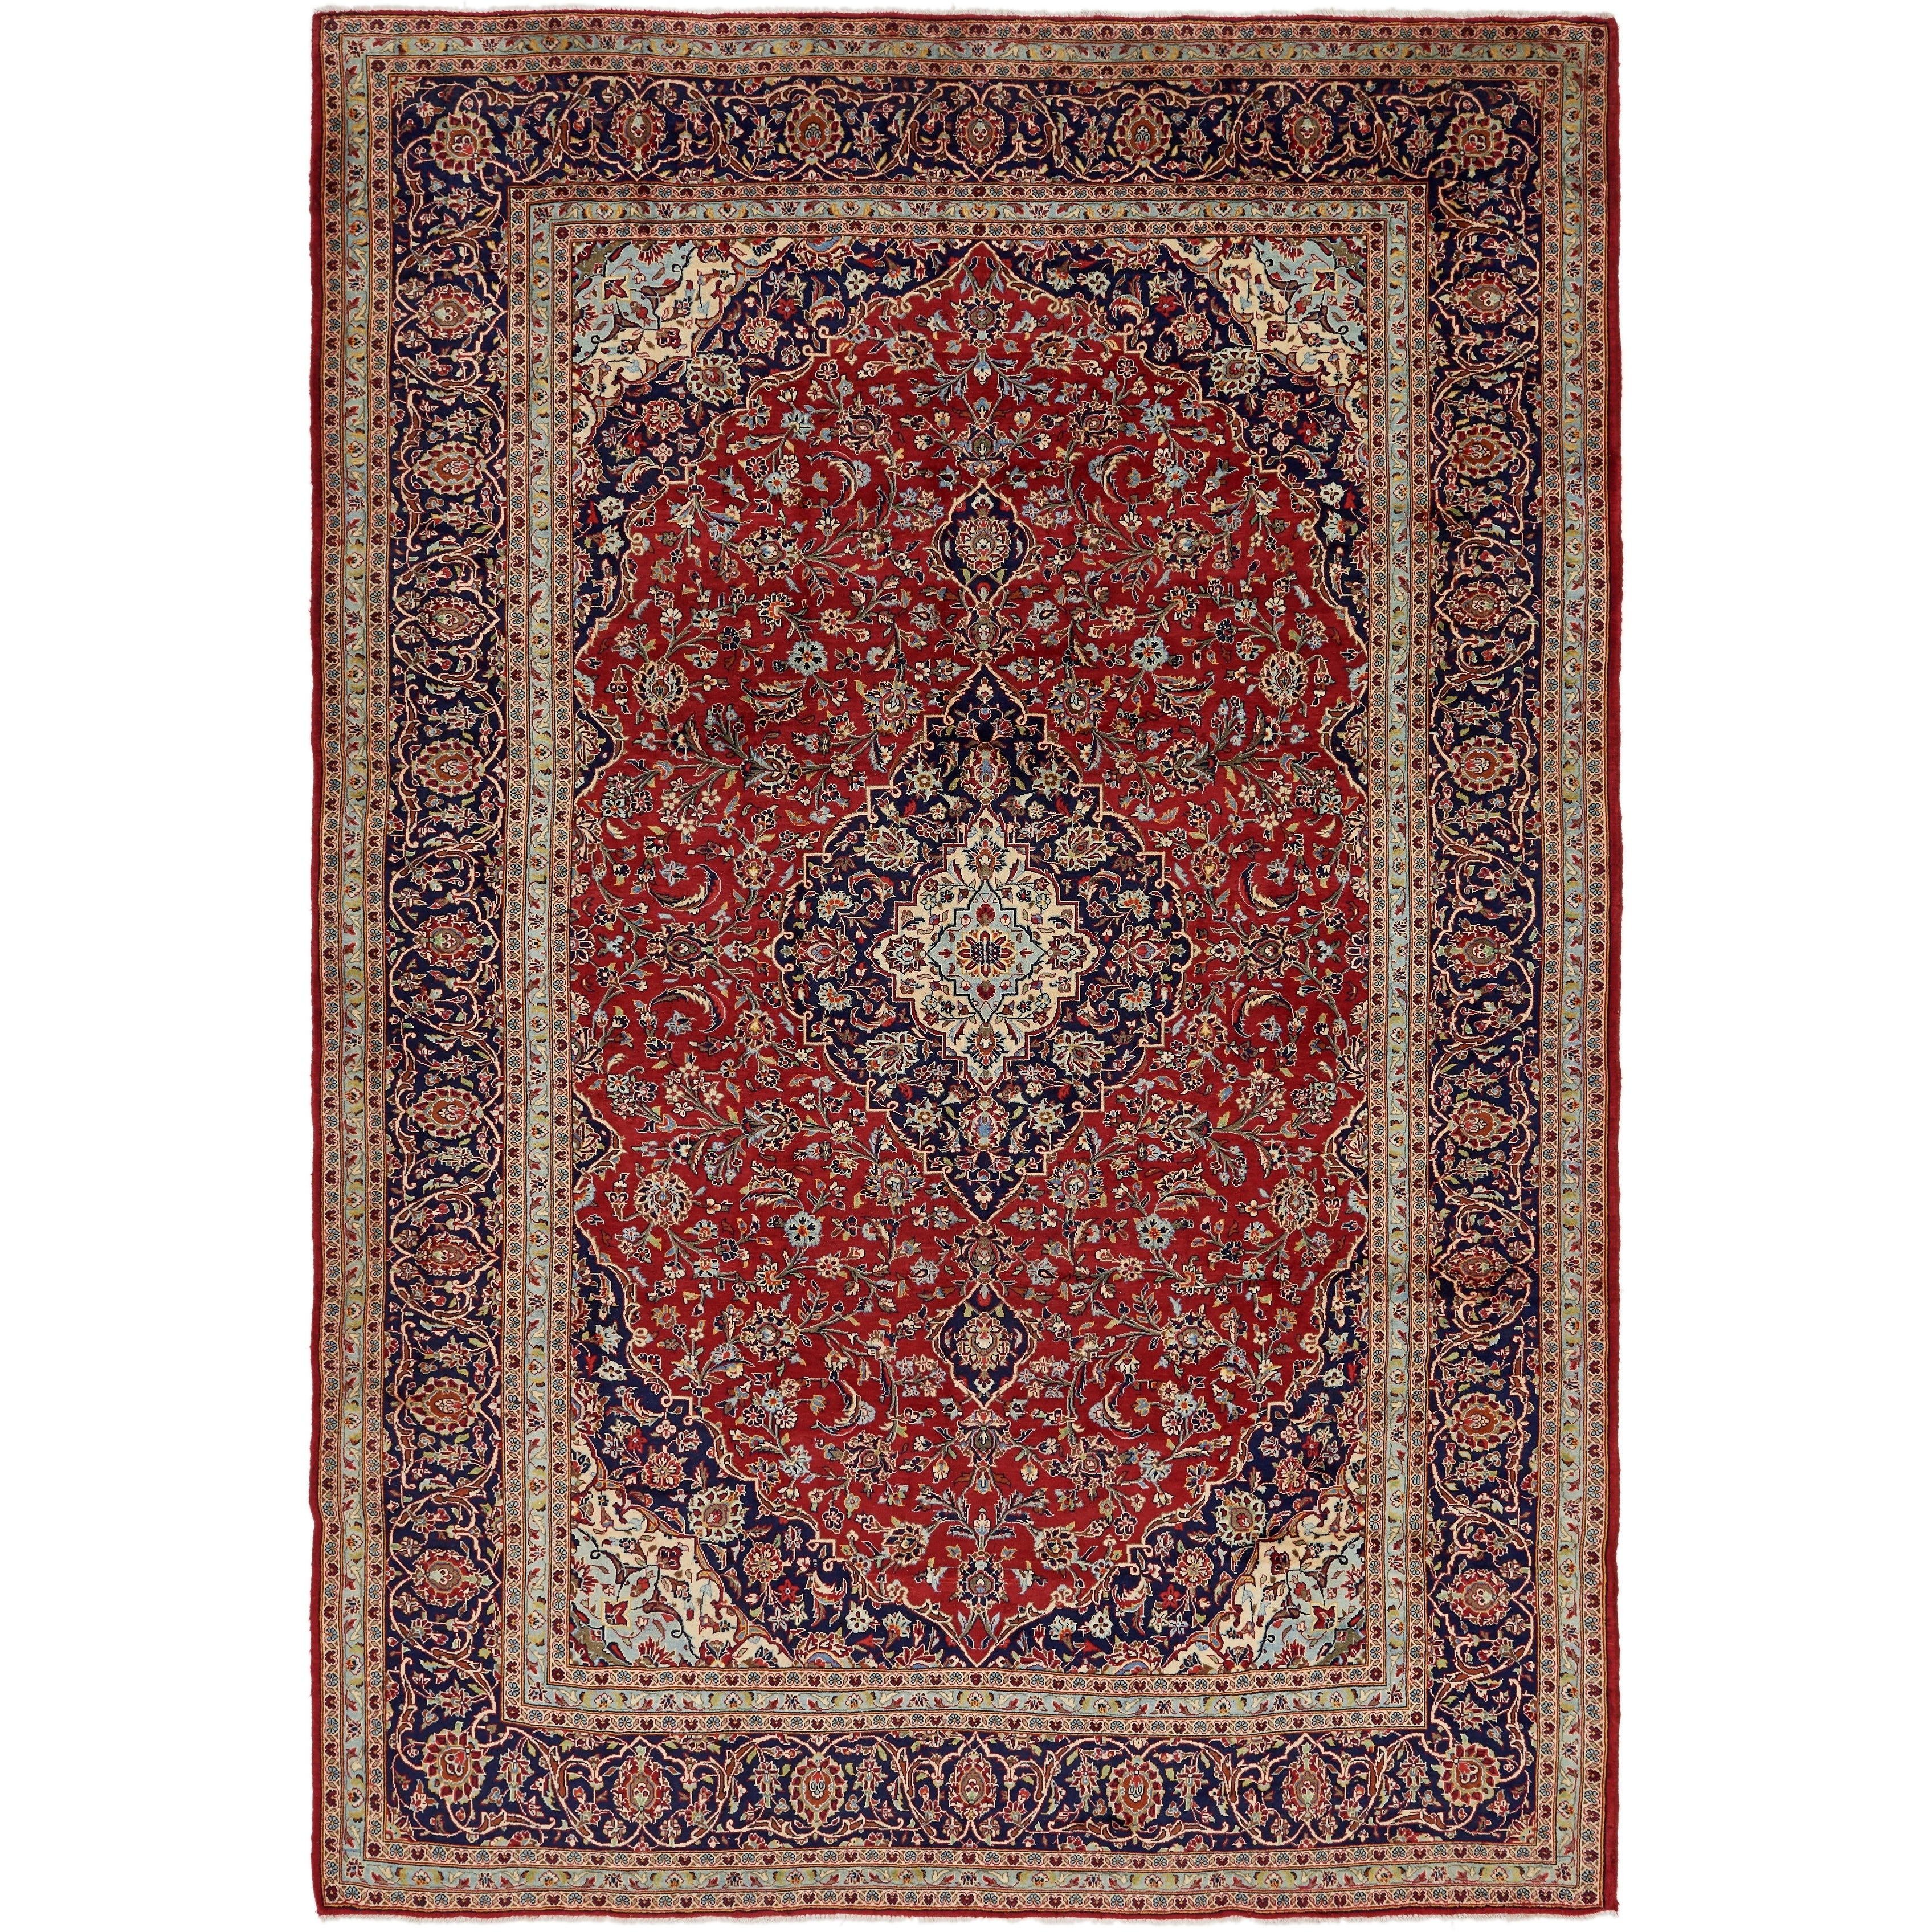 Hand Knotted Kashan Wool Area Rug - 9 8 x 14 (Red - 9 8 x 14)